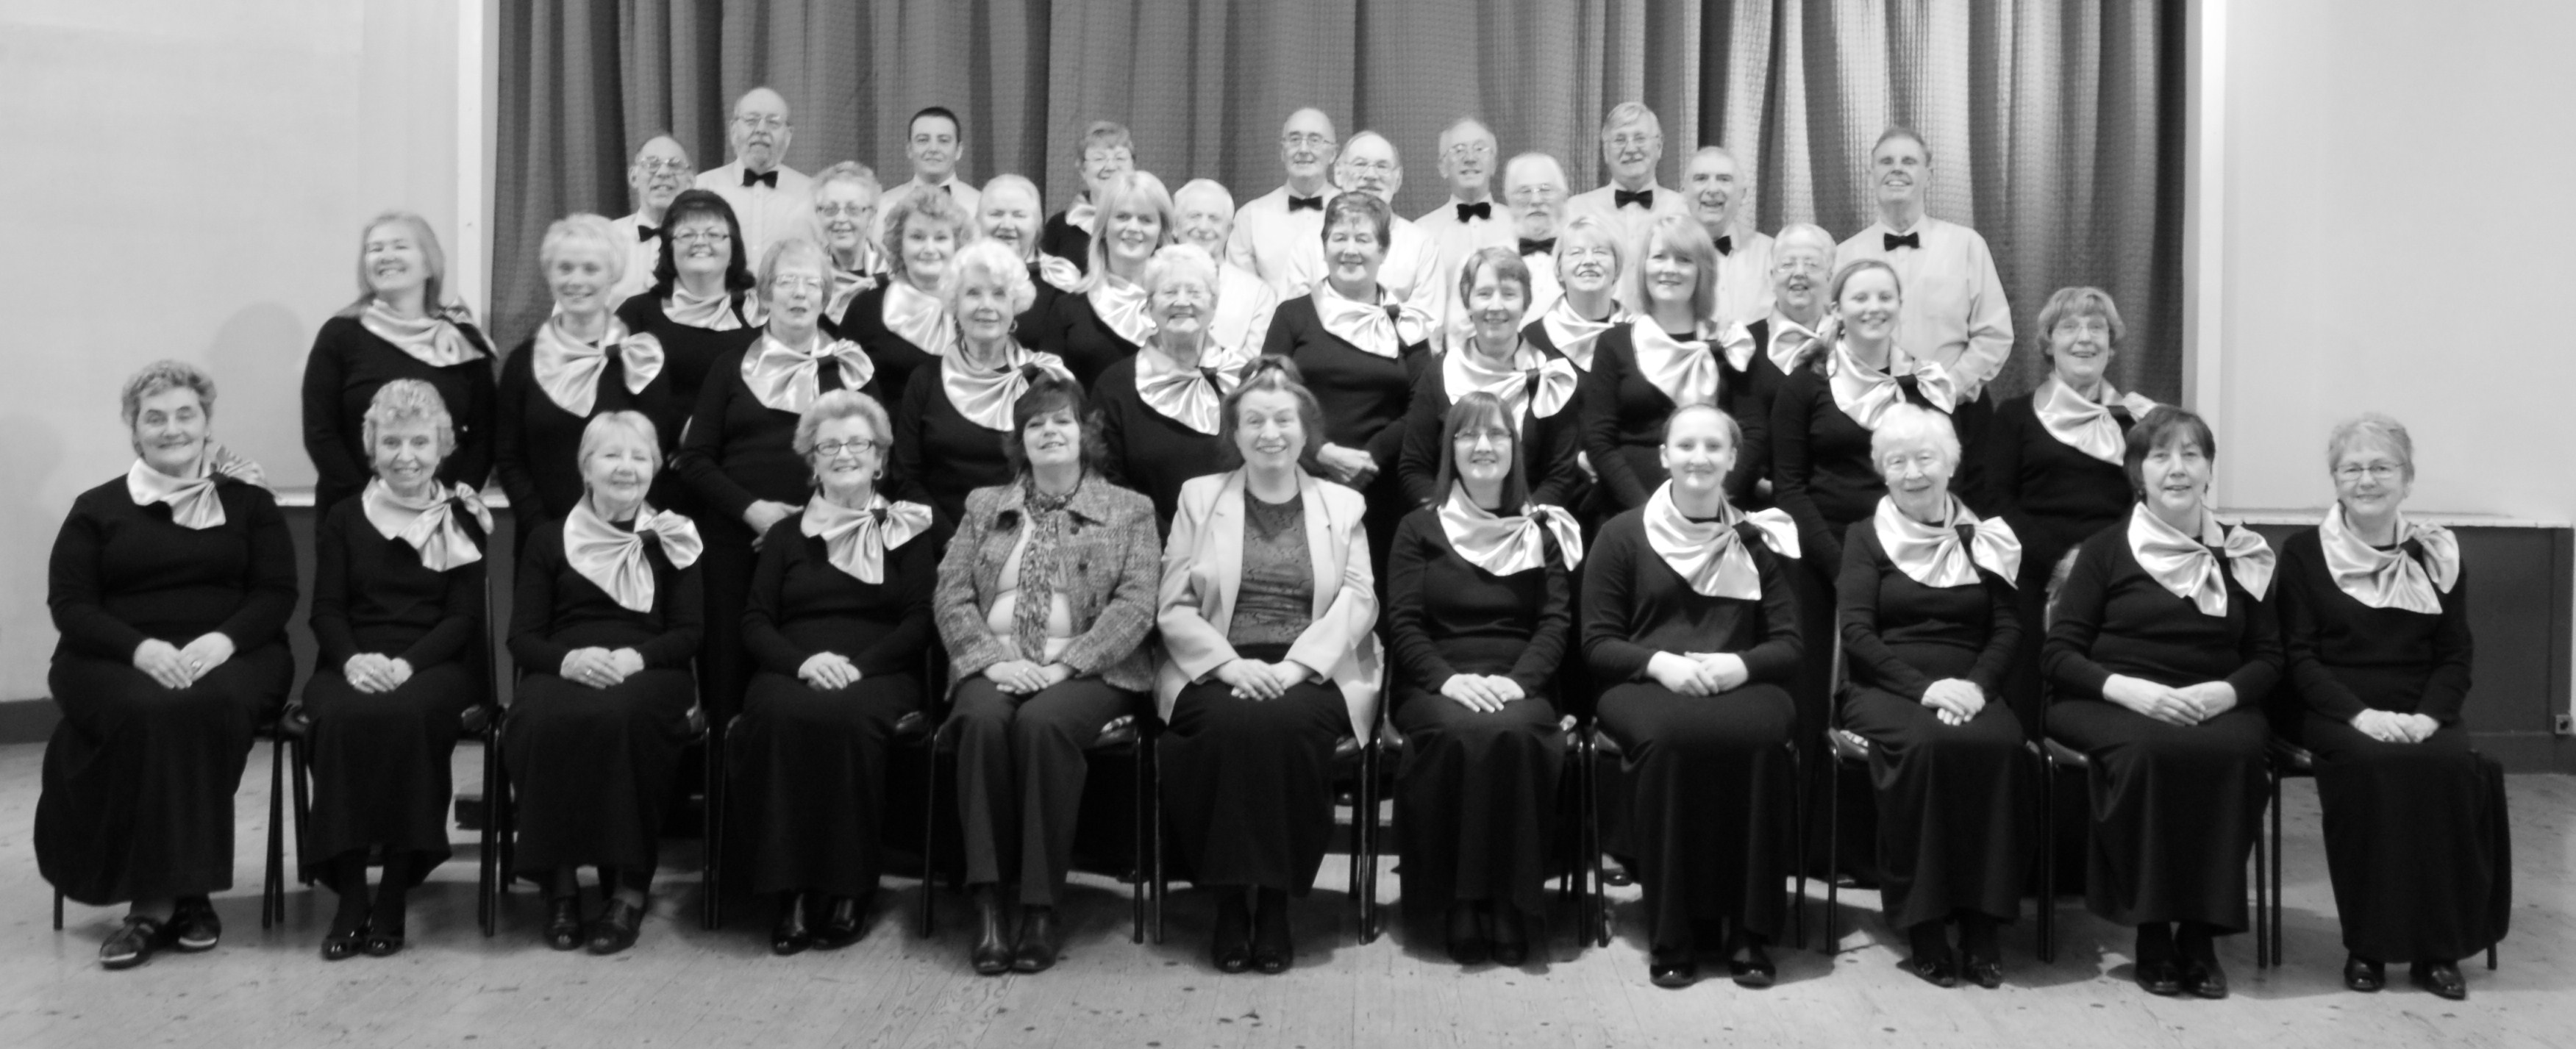 HS 2010 full choir (2) b n w.jpg